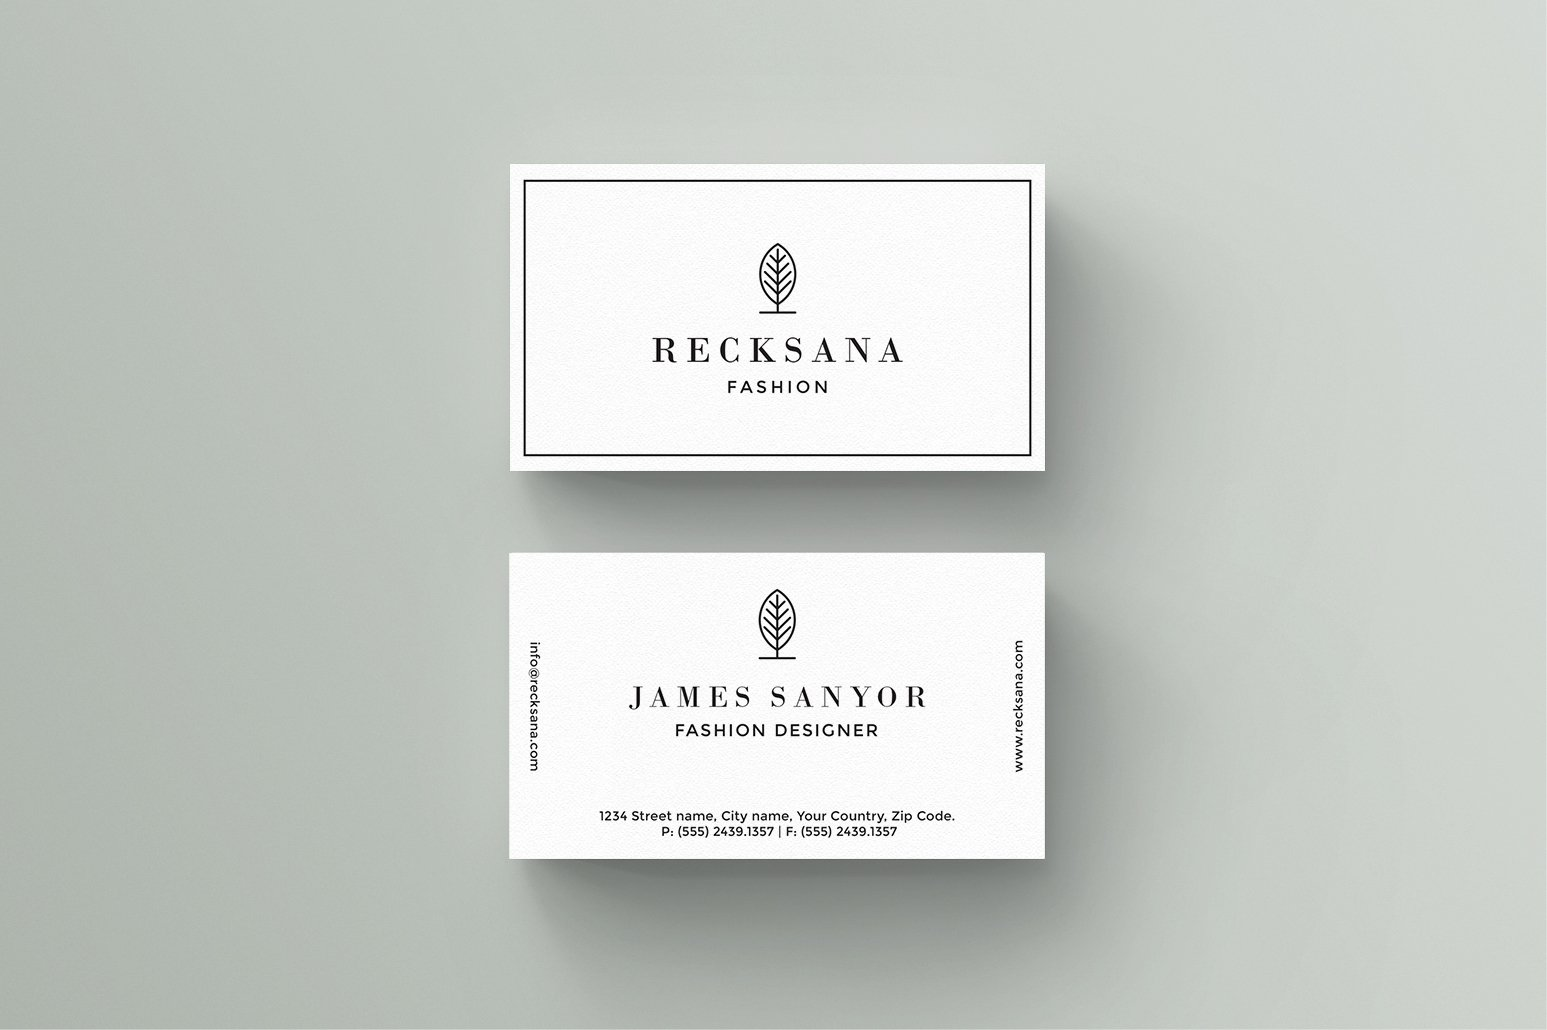 J u n i p e r business card template business card templates recksana business card template fbccfo Choice Image